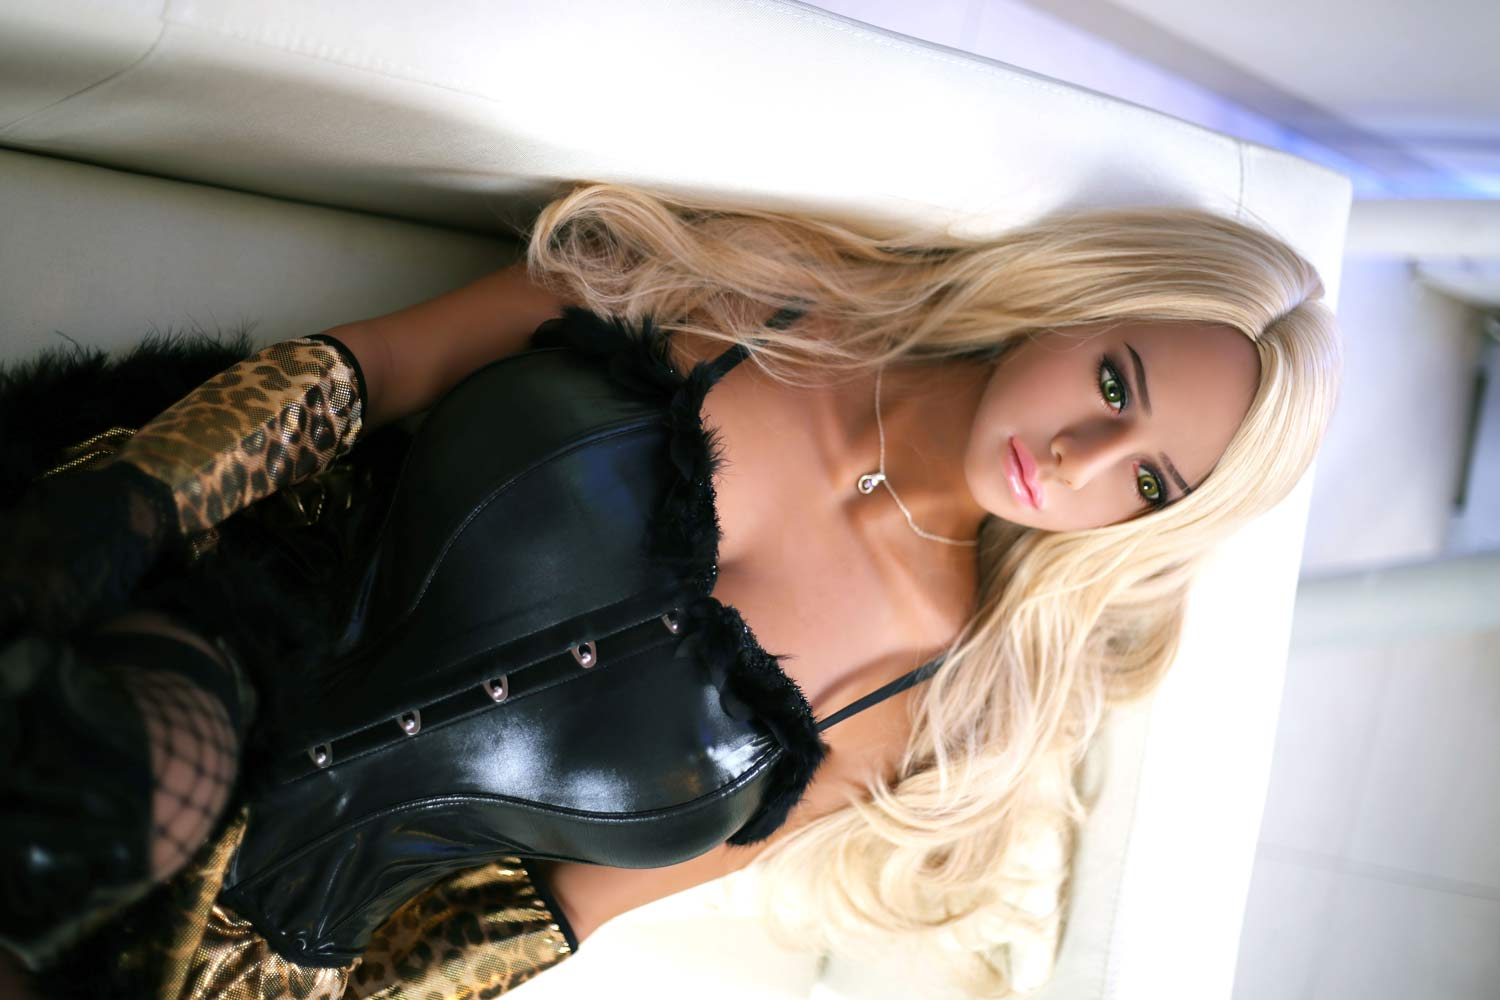 Big breasted sex doll with long blonde hair